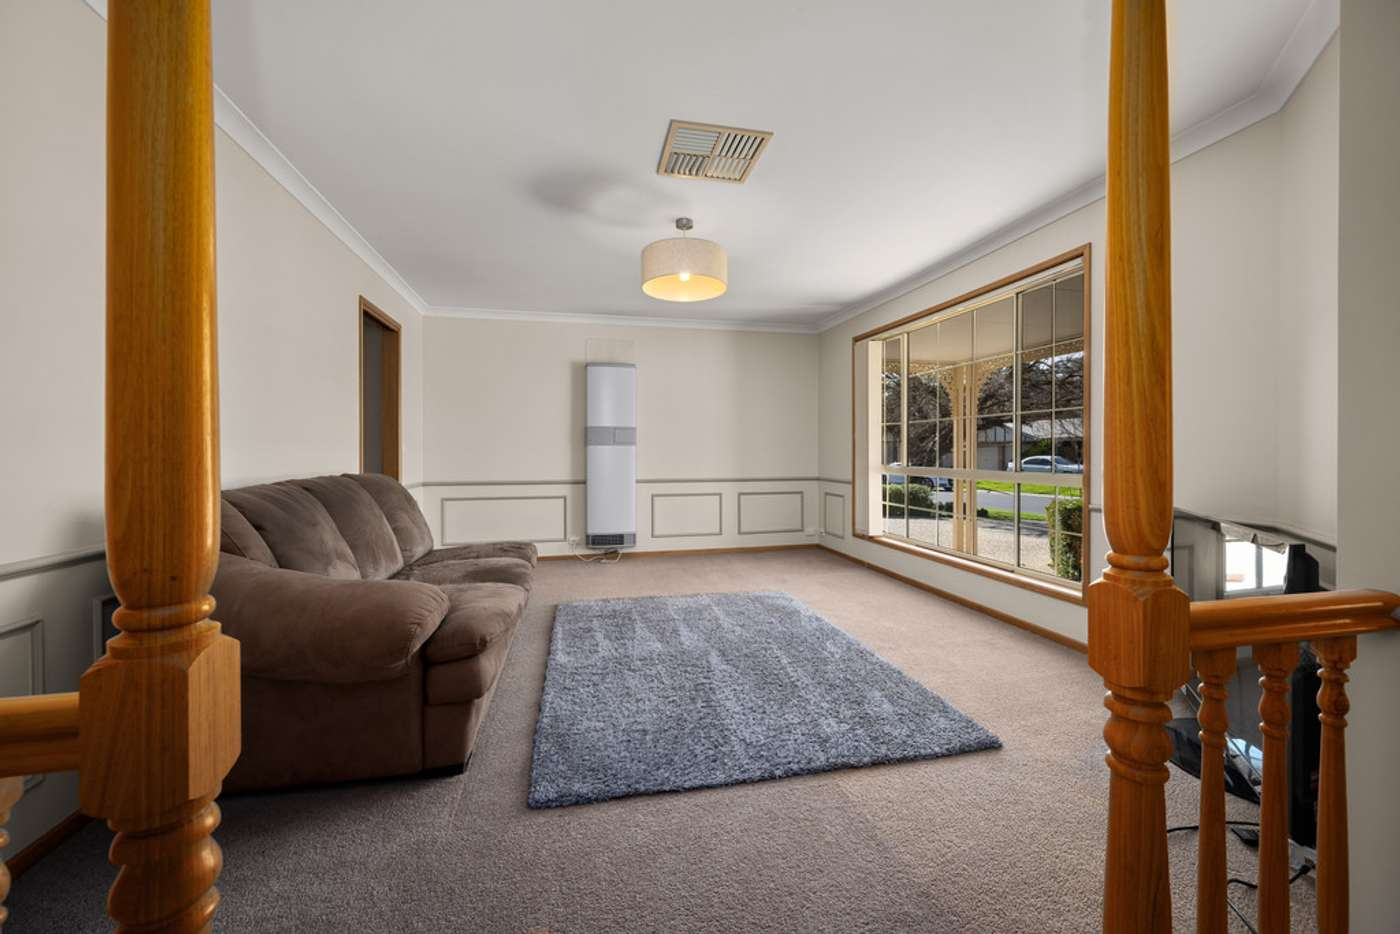 Fifth view of Homely house listing, 3 Saunders Crescent, Wodonga VIC 3690